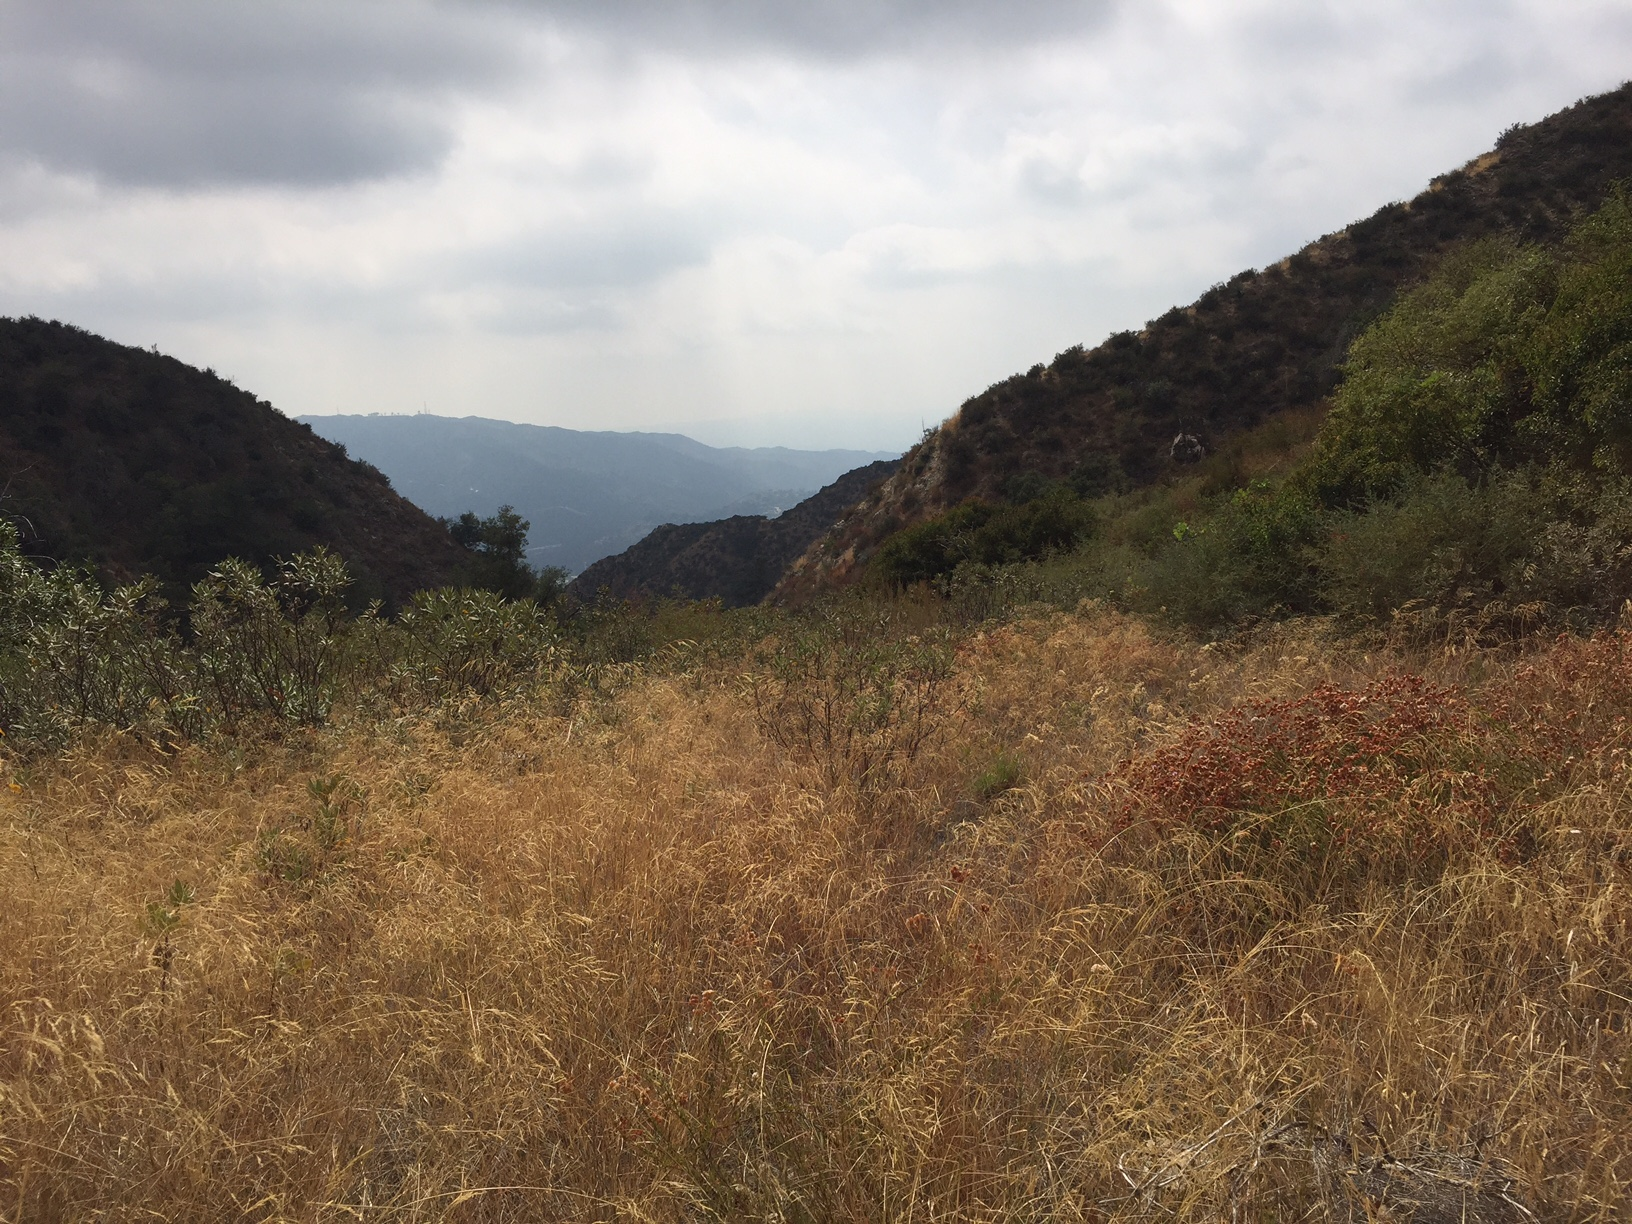 View from the mountain - overcast clouds, dried grass, down the valley